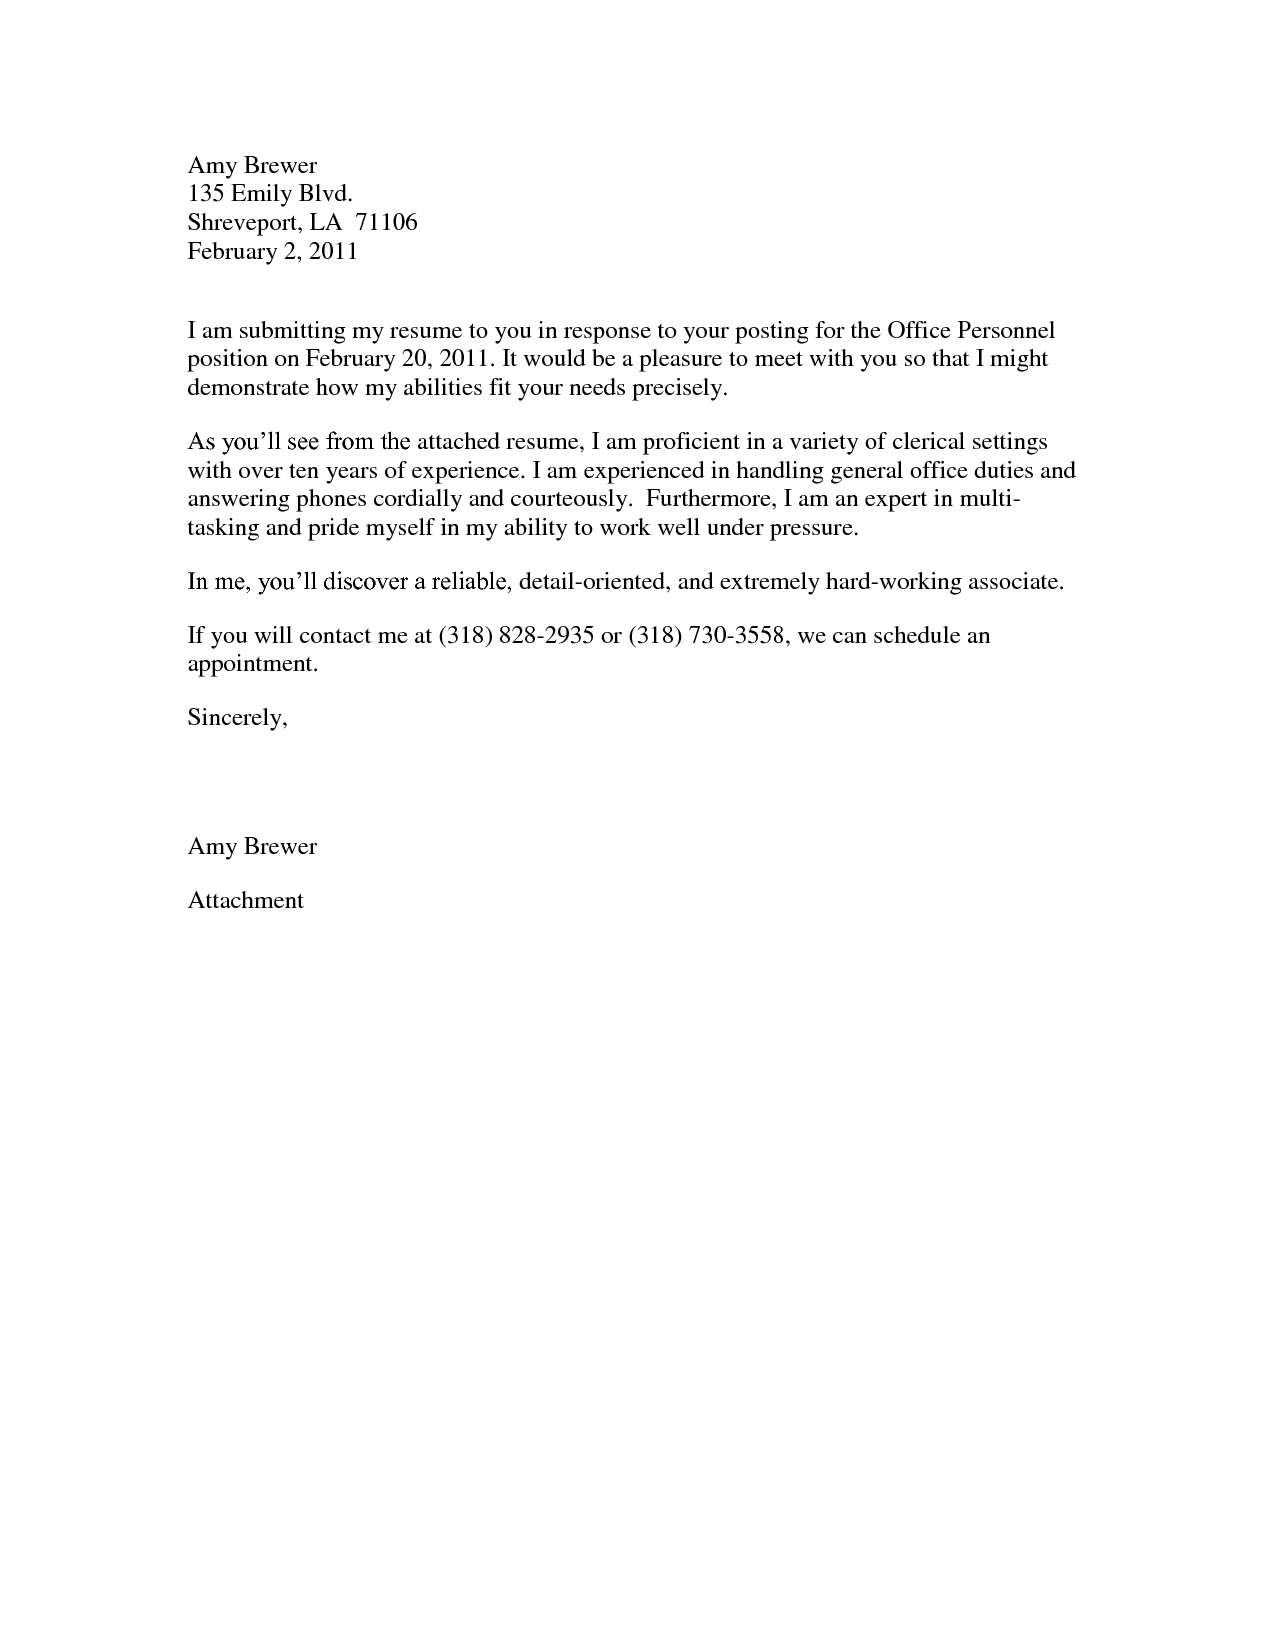 You Can Download For Full Letter Resume Template Here Http Newspb Org Cover Lette Cover Letter For Resume Writing An Application Letter Application Letters